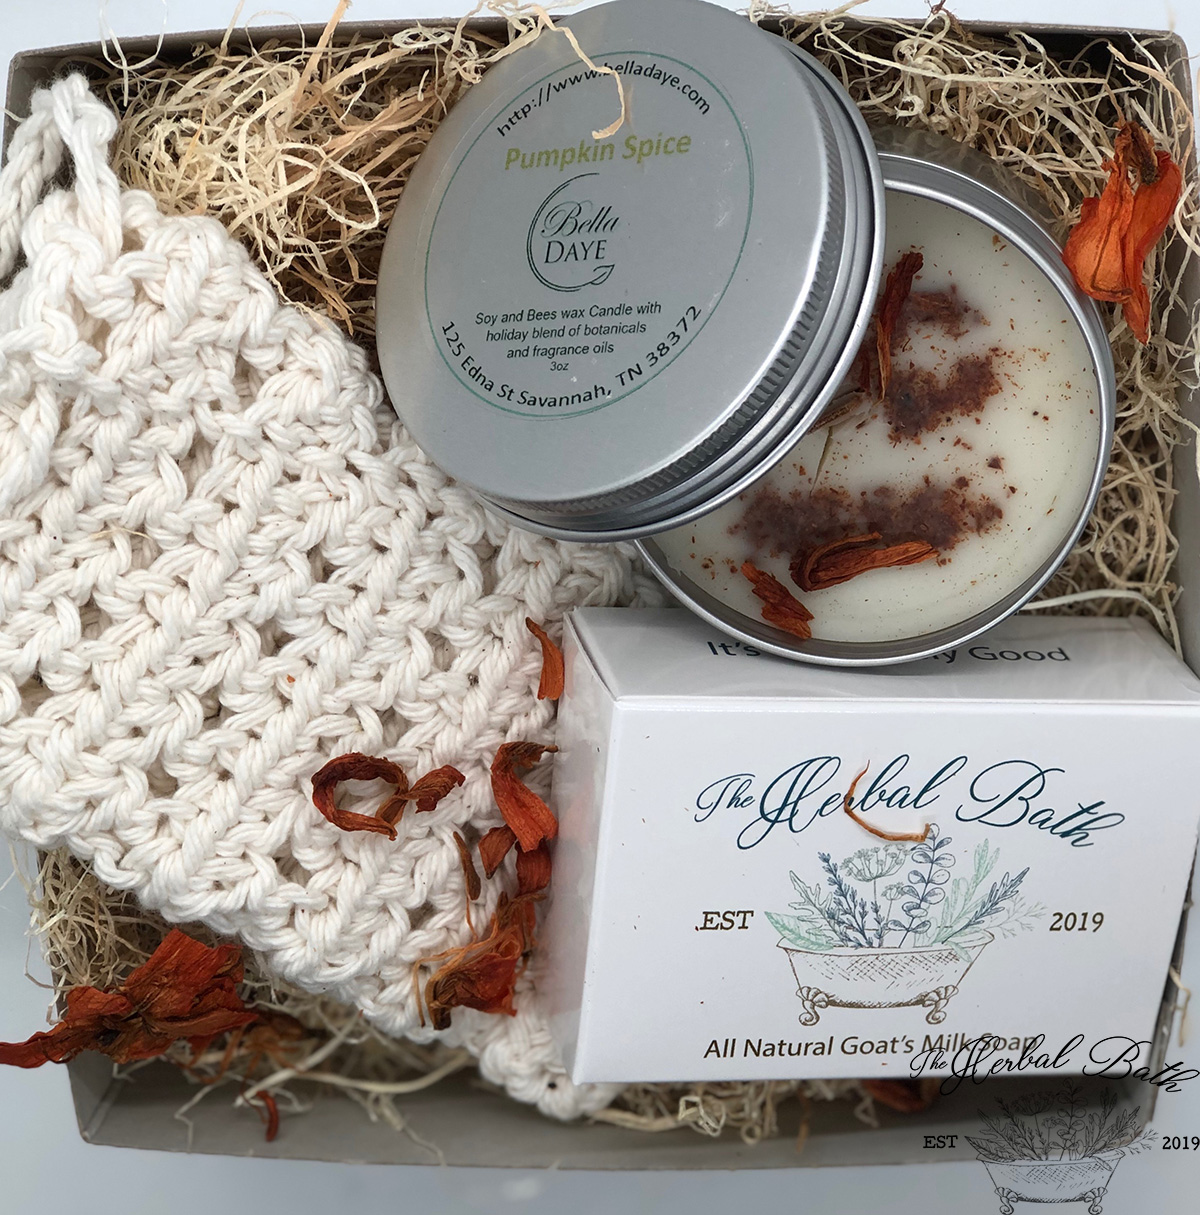 Pumpkin Spice Latte' gift set